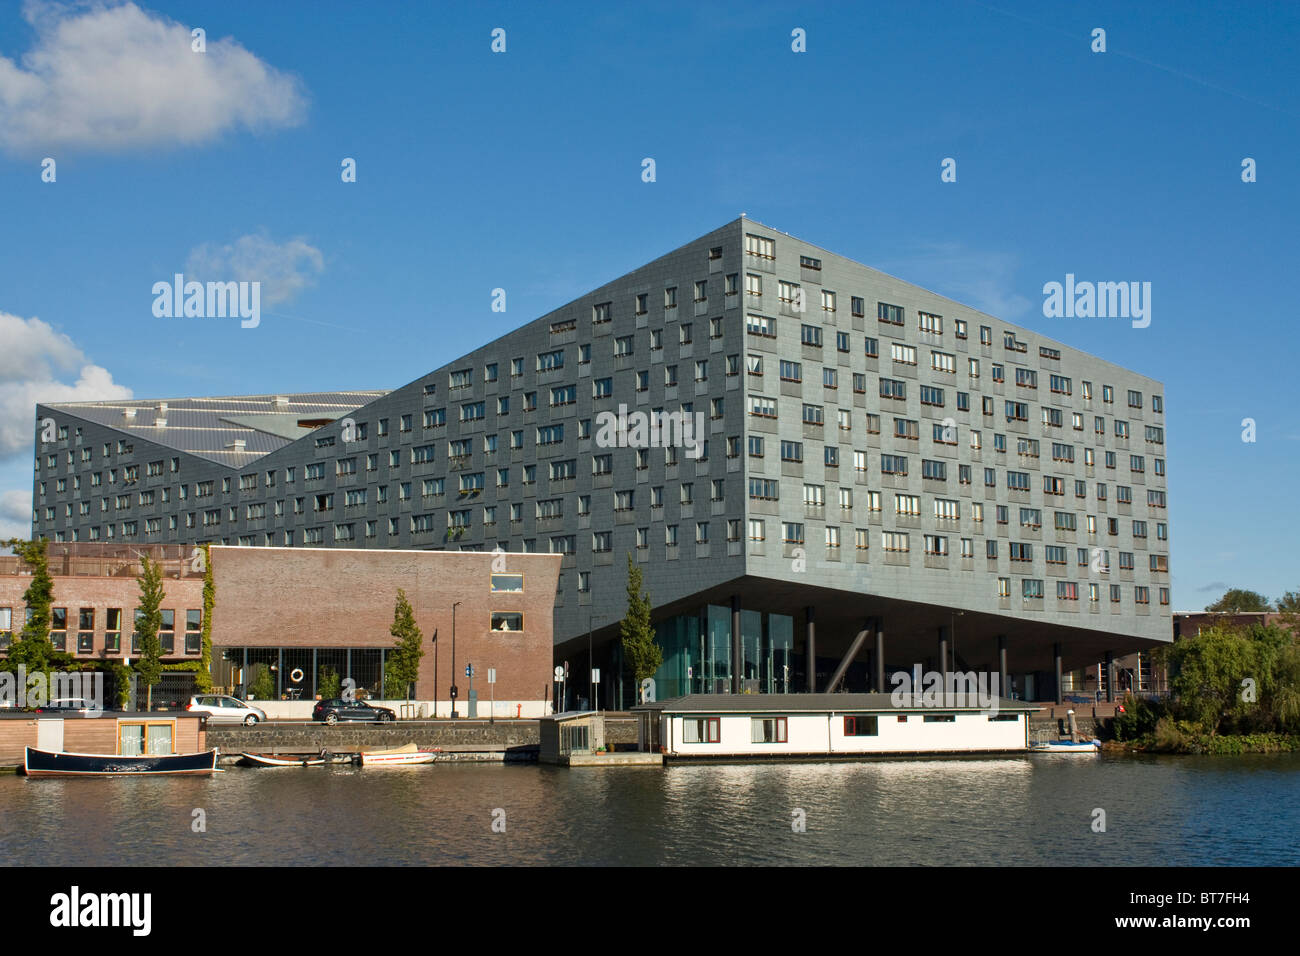 Sphinx or Whale by Frits van Dongen, modern architecture in Amsterdam Eastern Docklands - Stock Image